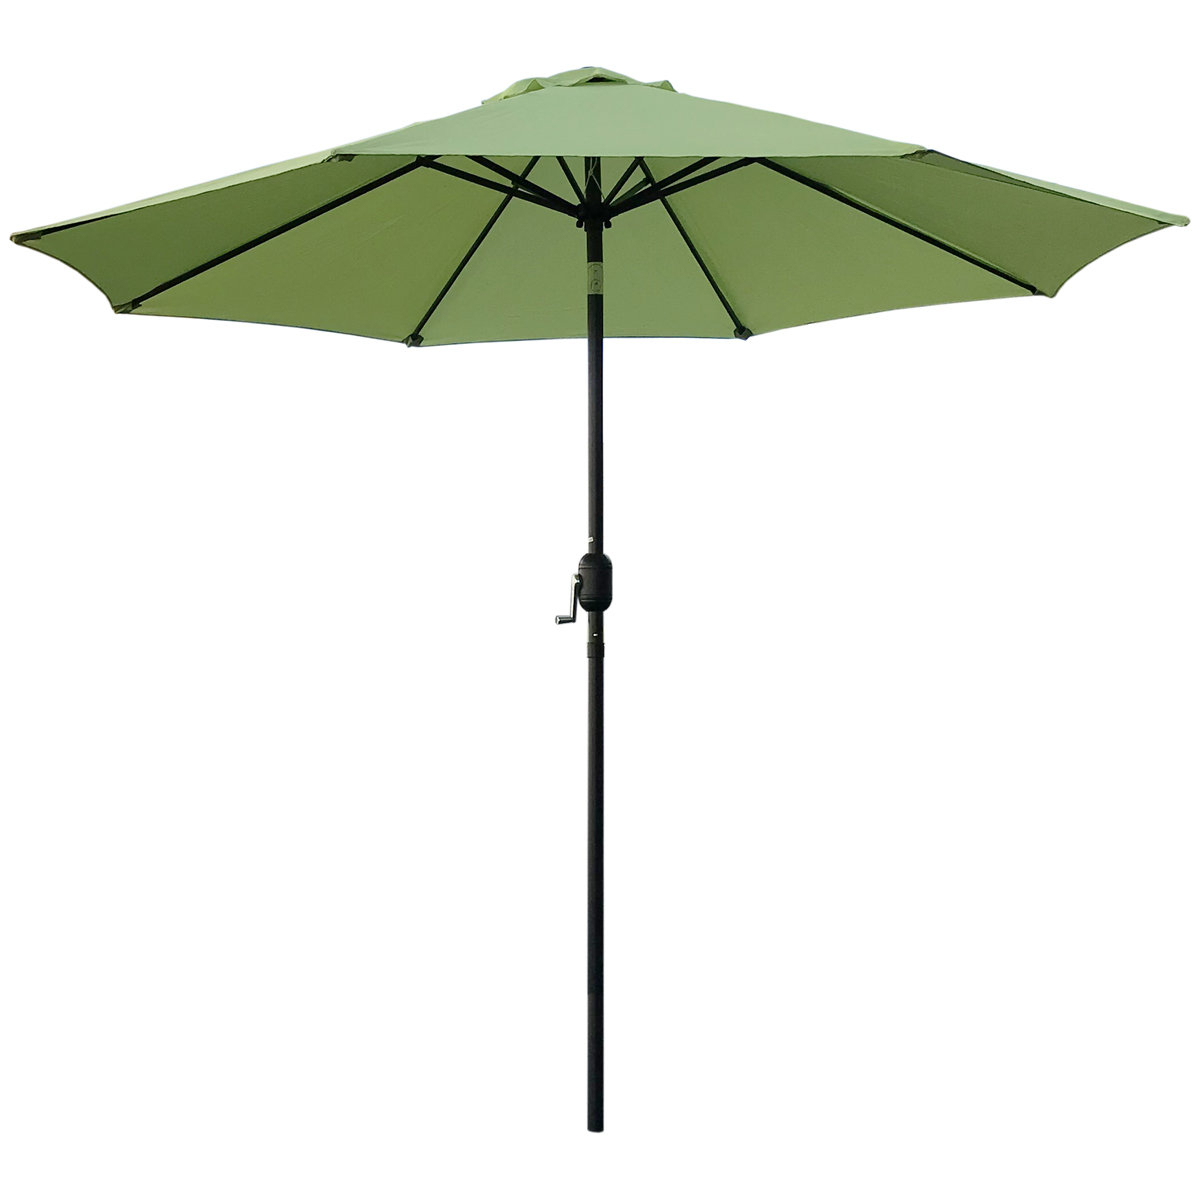 Widely Used Shropshire Market Umbrellas In Wragby 9' Market Umbrella (View 19 of 20)